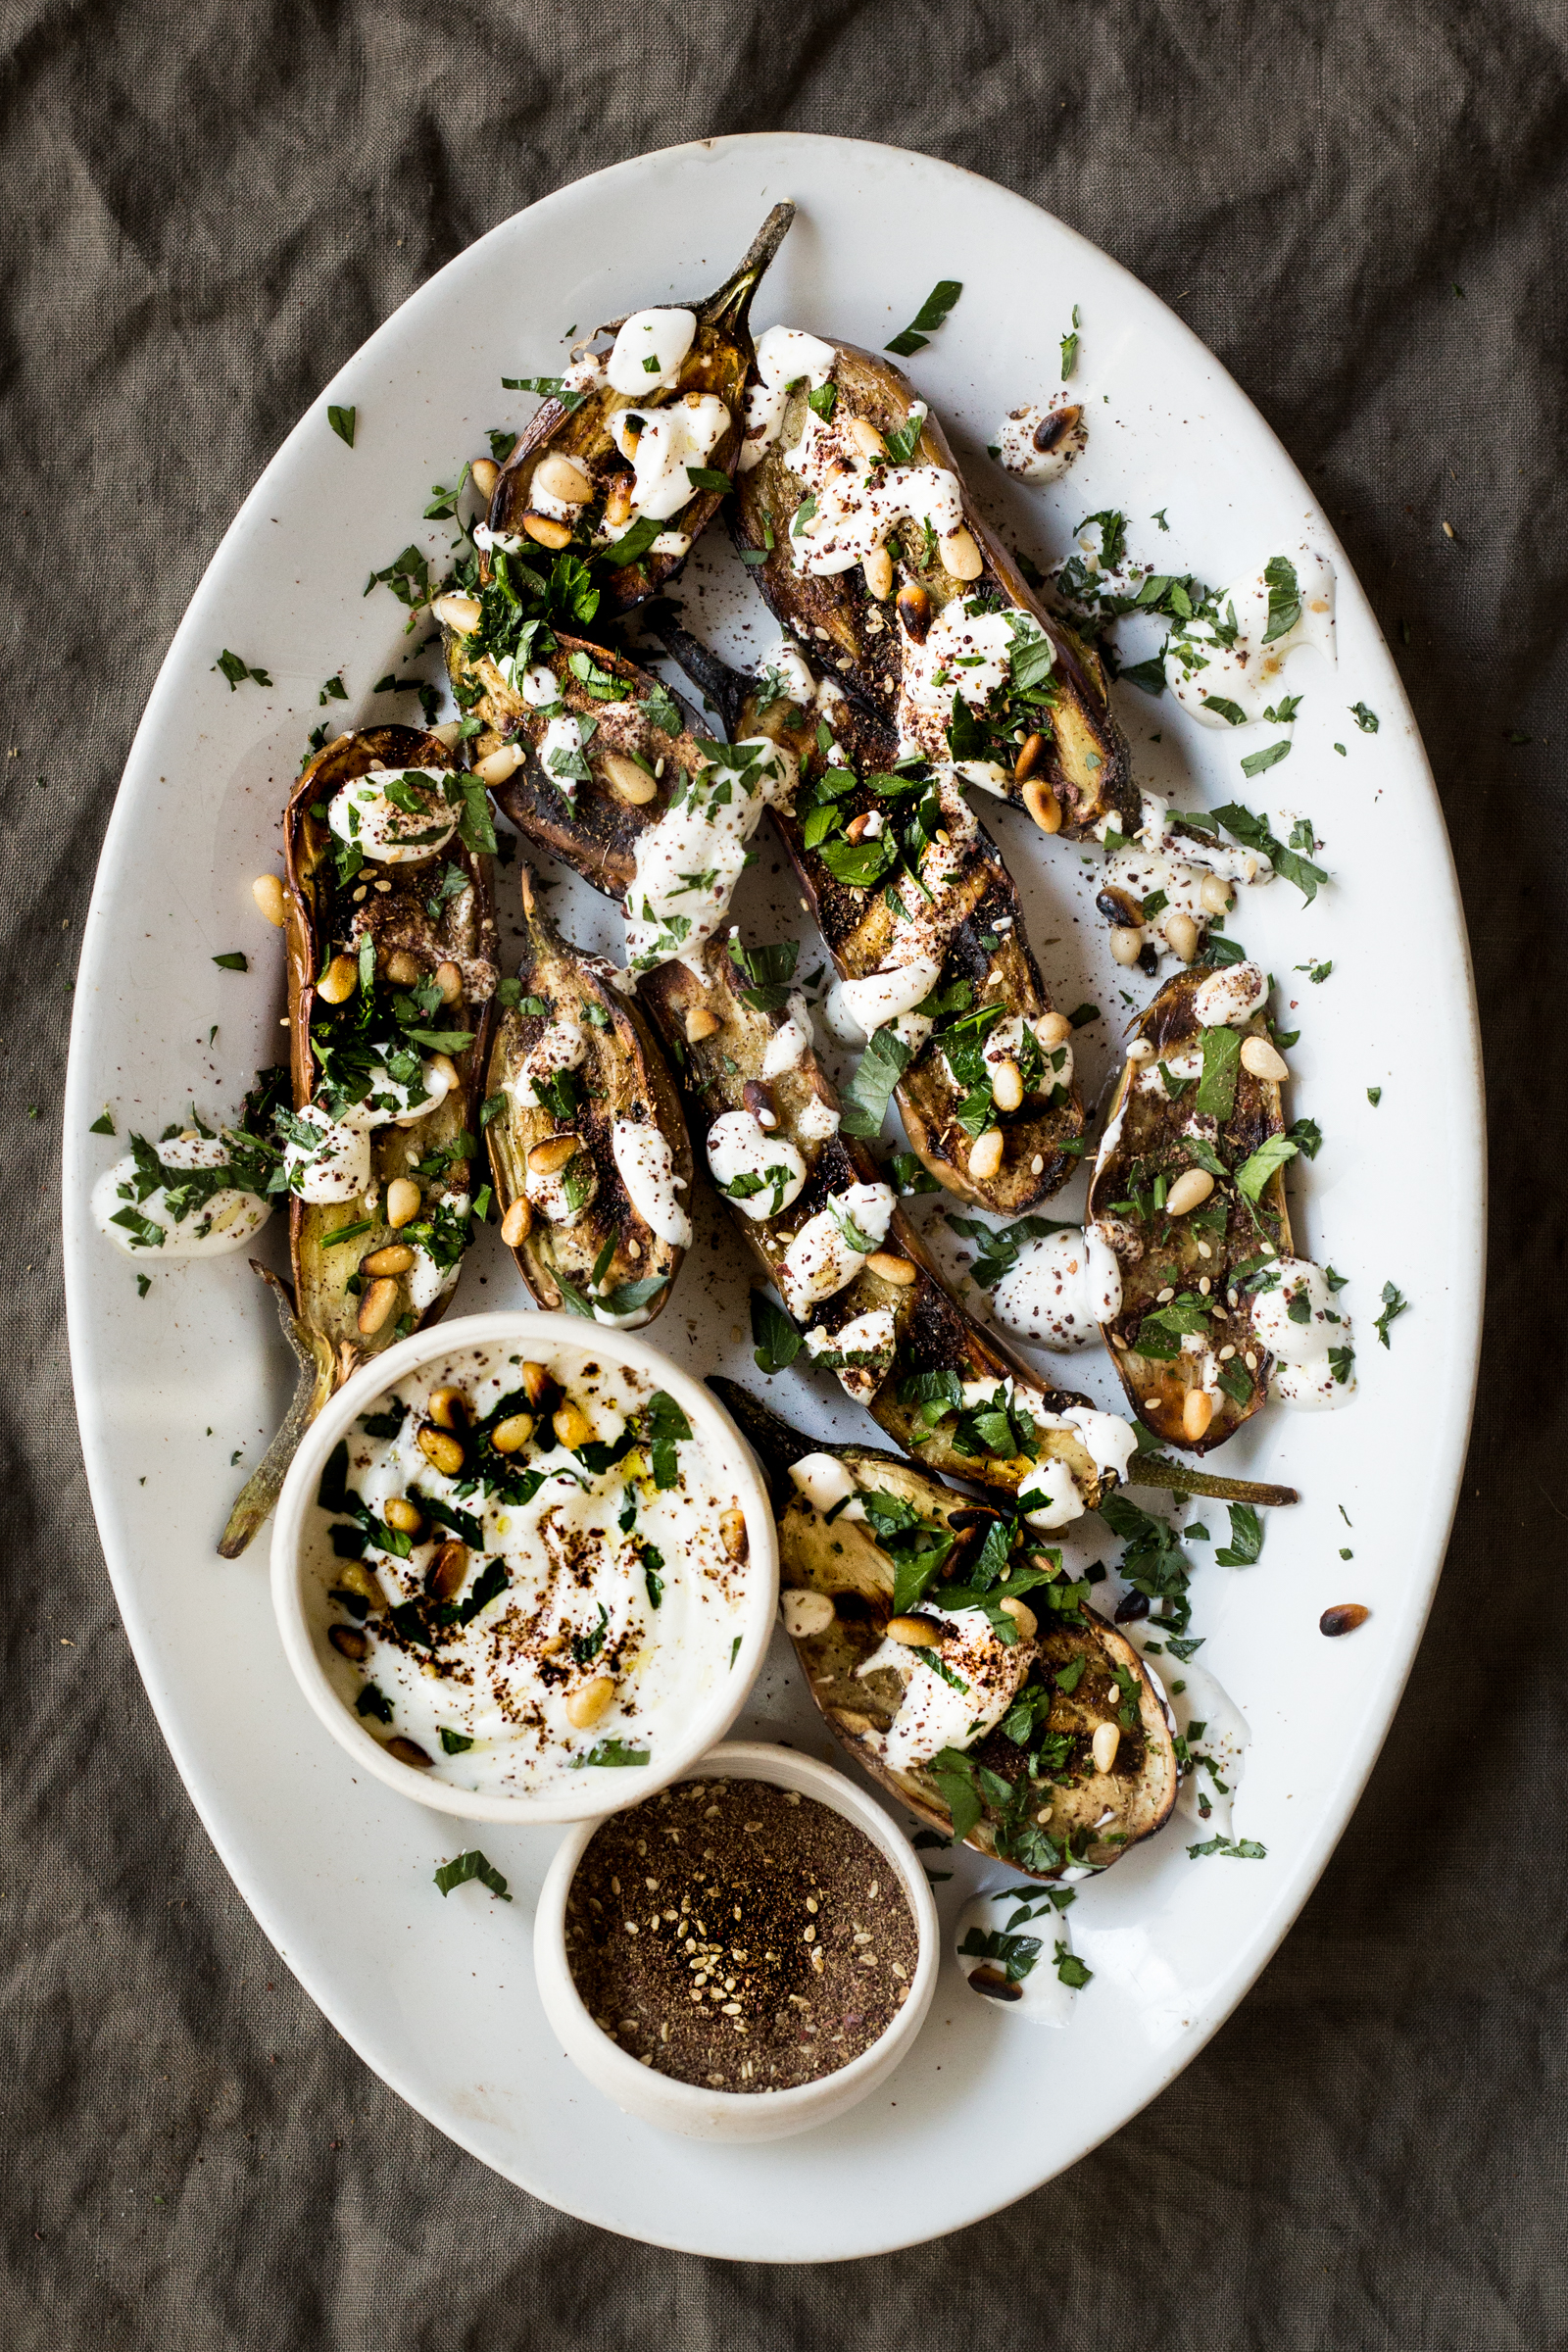 Grilled Eggplant with Yogurt and Za'atar